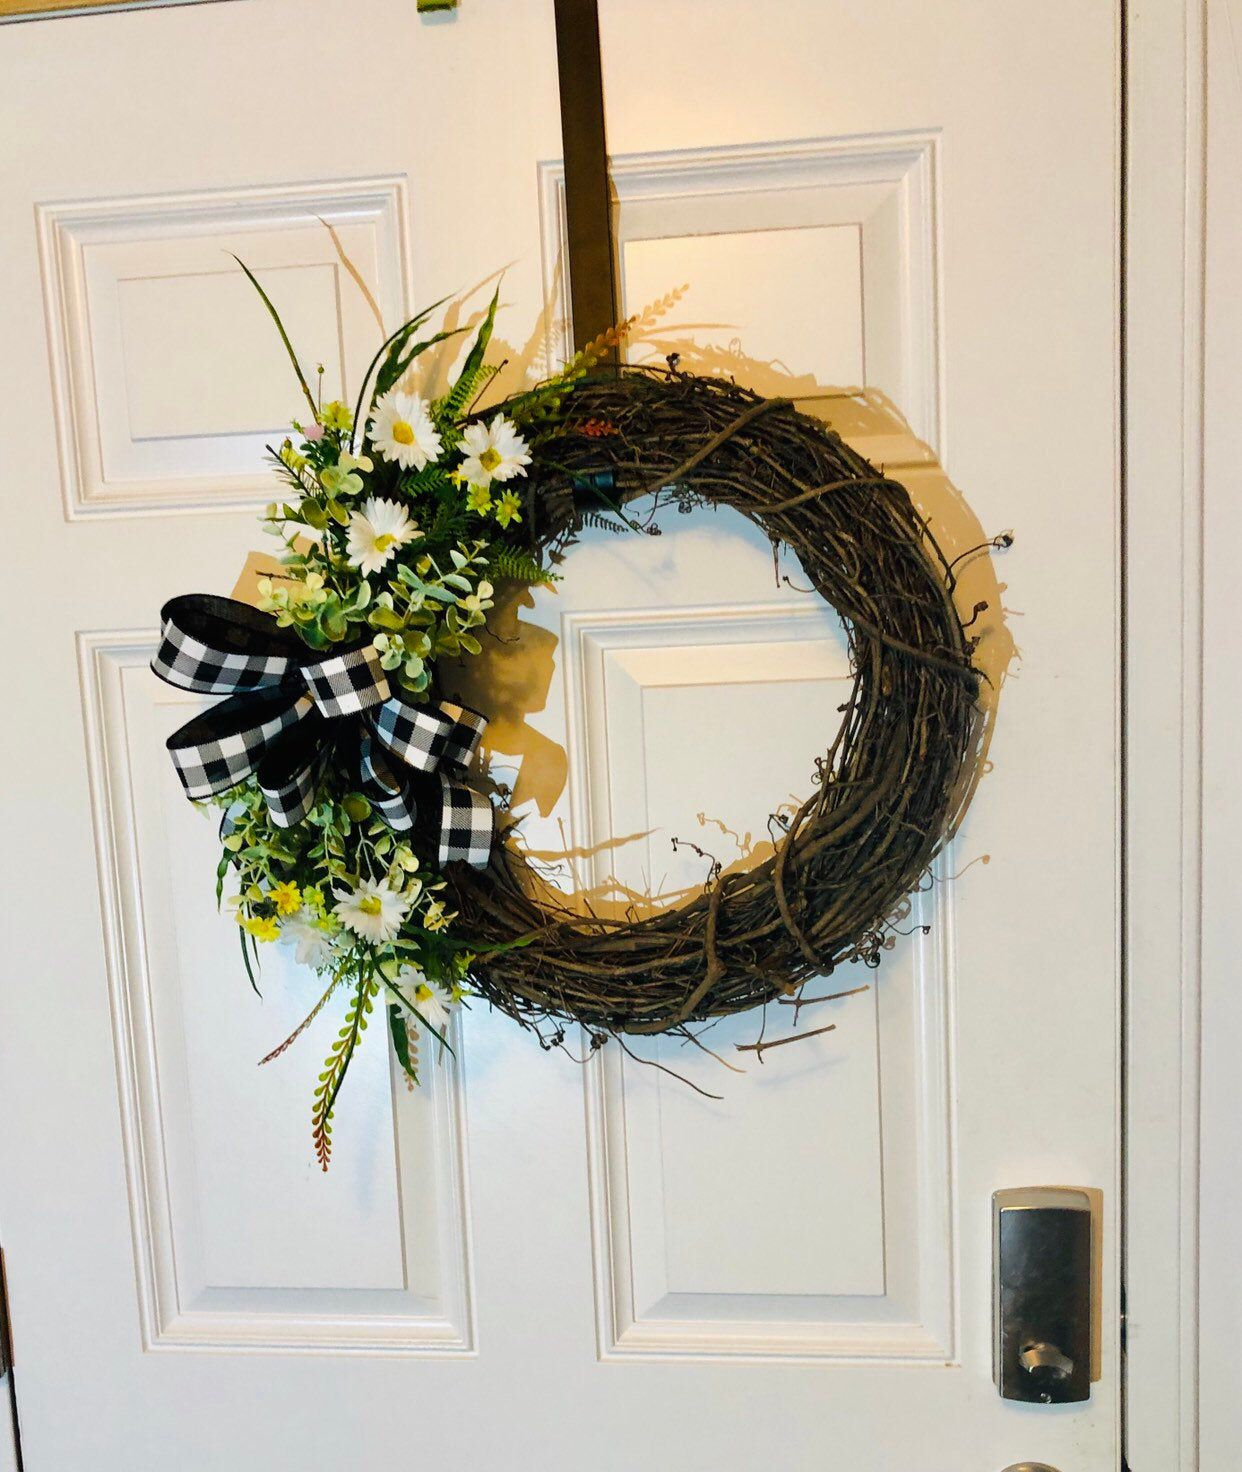 Everyday Grapevine Wreath Black And White Grapevine With Daisies Wreath For A House Warming Gift Christmas Gift Grapevine Wreath House Warming Gifts Grape Vines